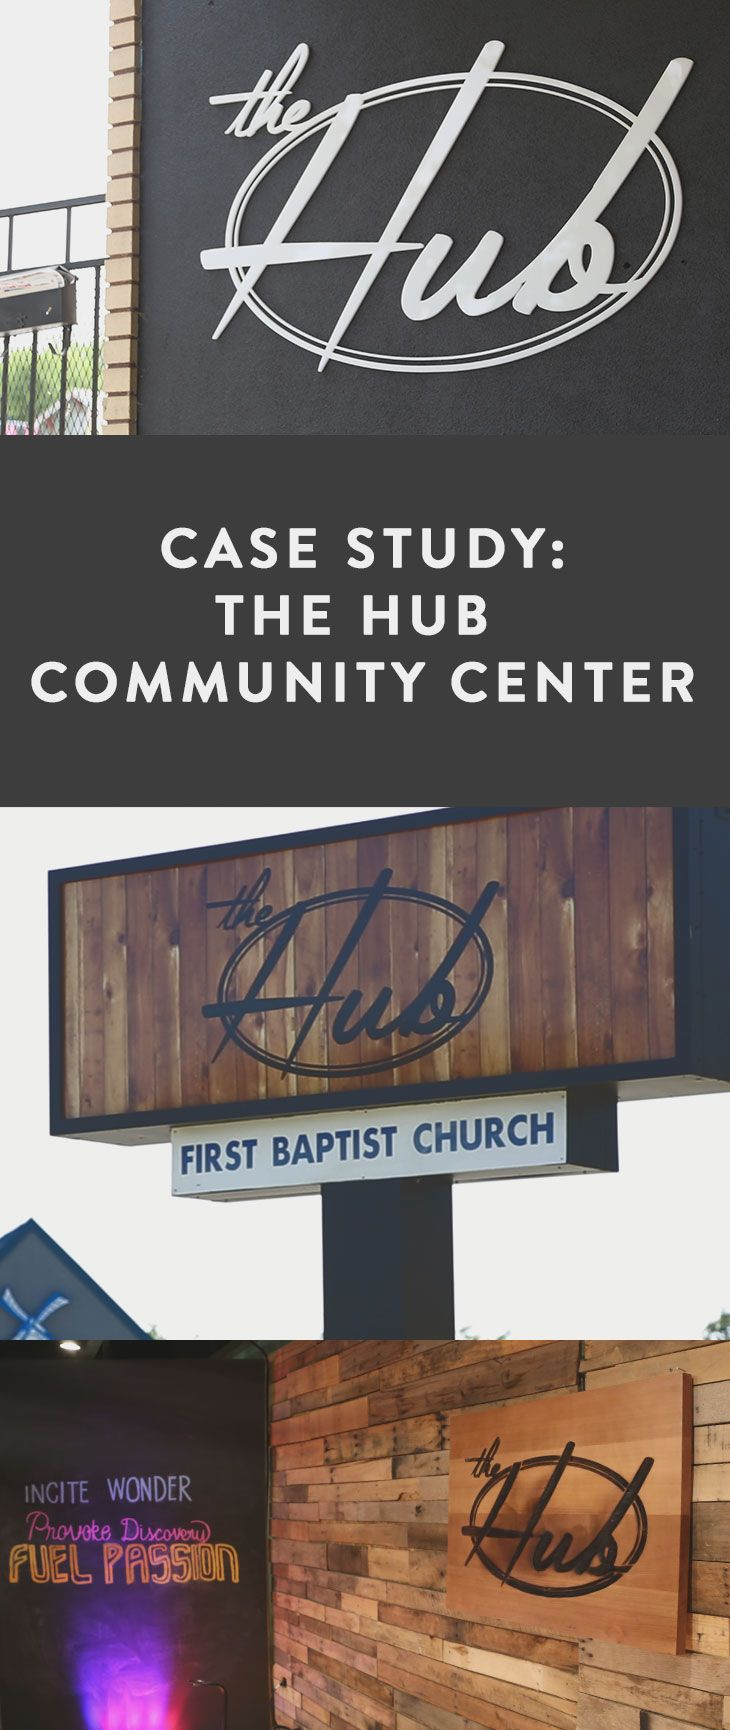 Case Study: The Hub Community Center